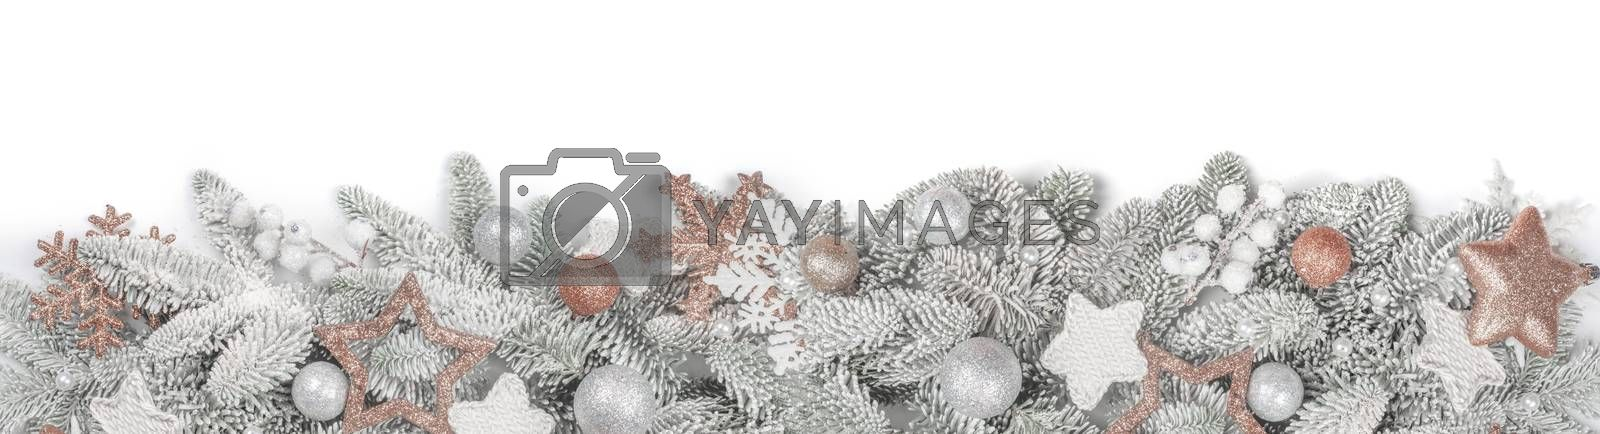 Frosted fir tree twigs and Christmas decorative bauble balls isolated on white background with copy space for text template flat lay top view design